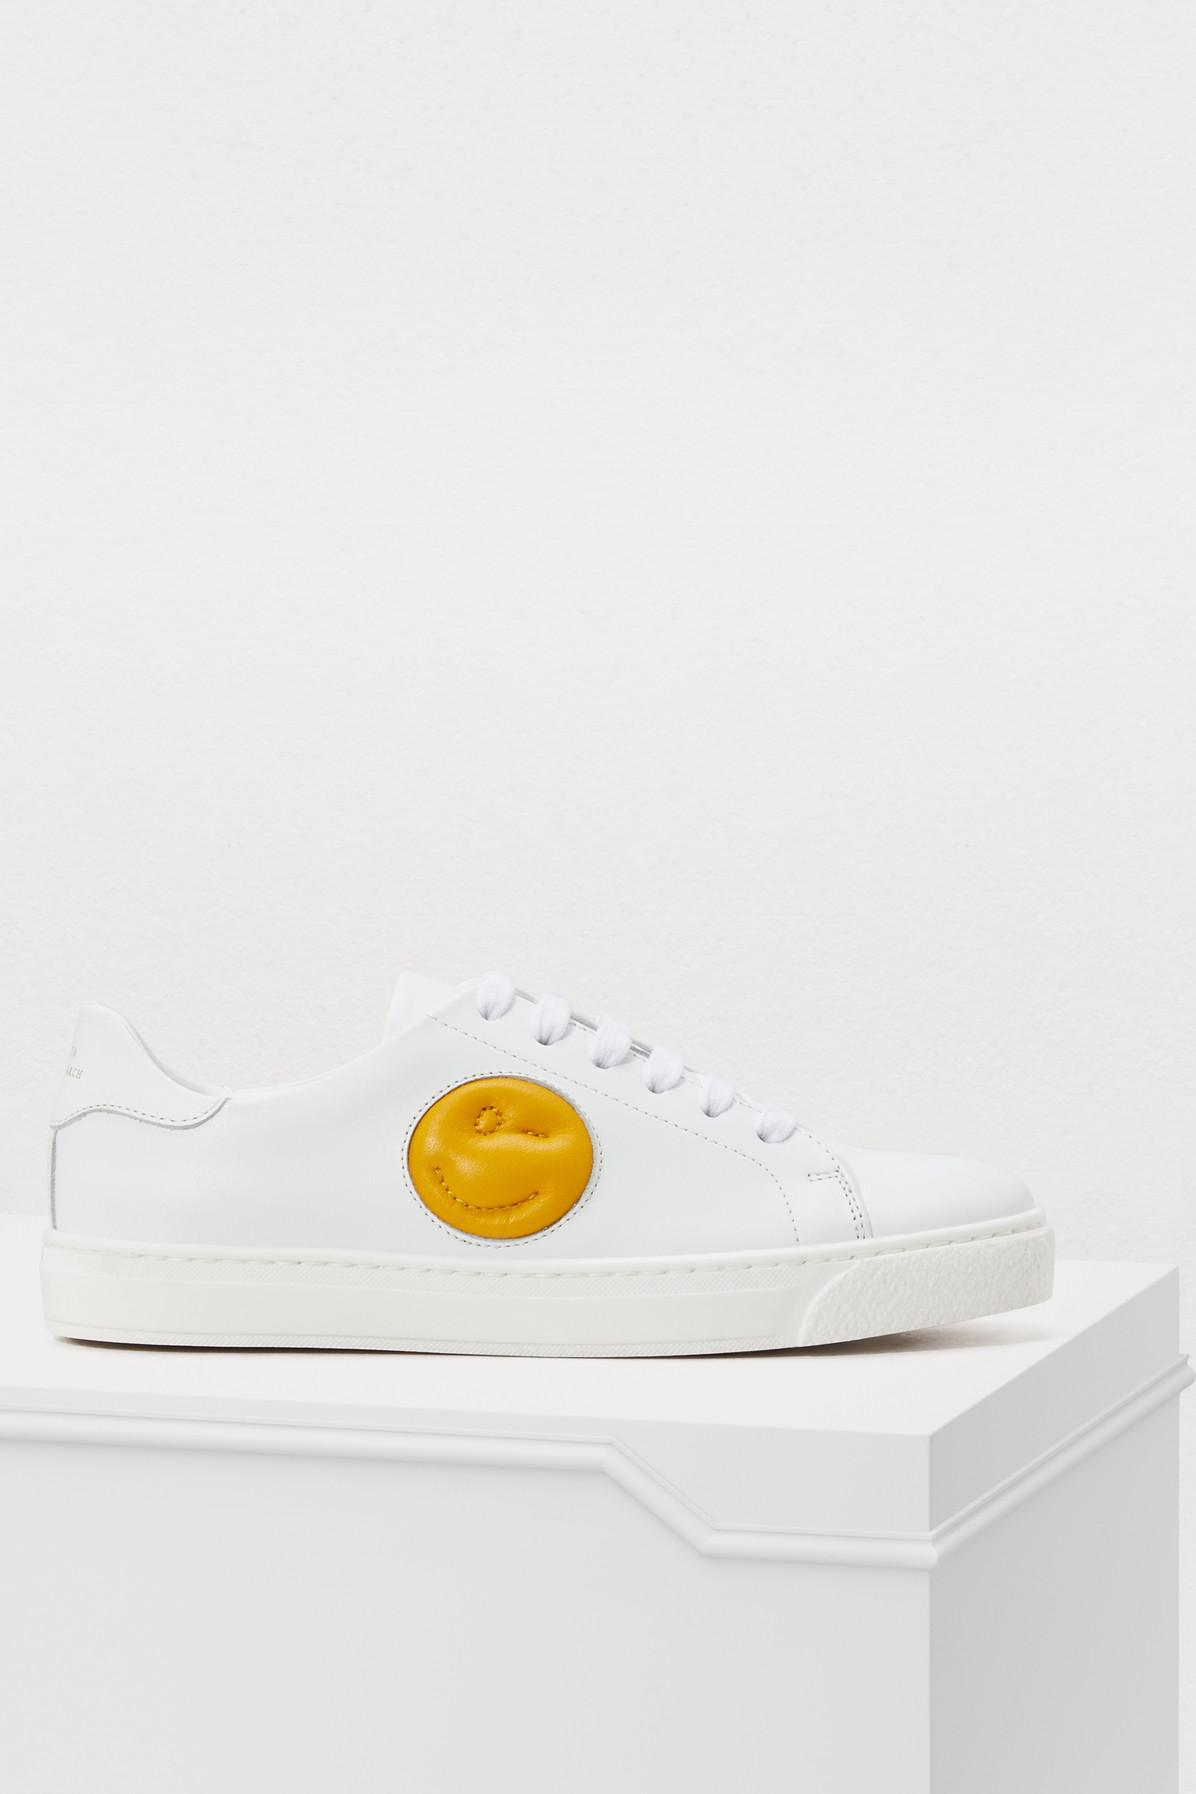 Anya Hindmarch Chubby Wink leather sneakers 8jL2d